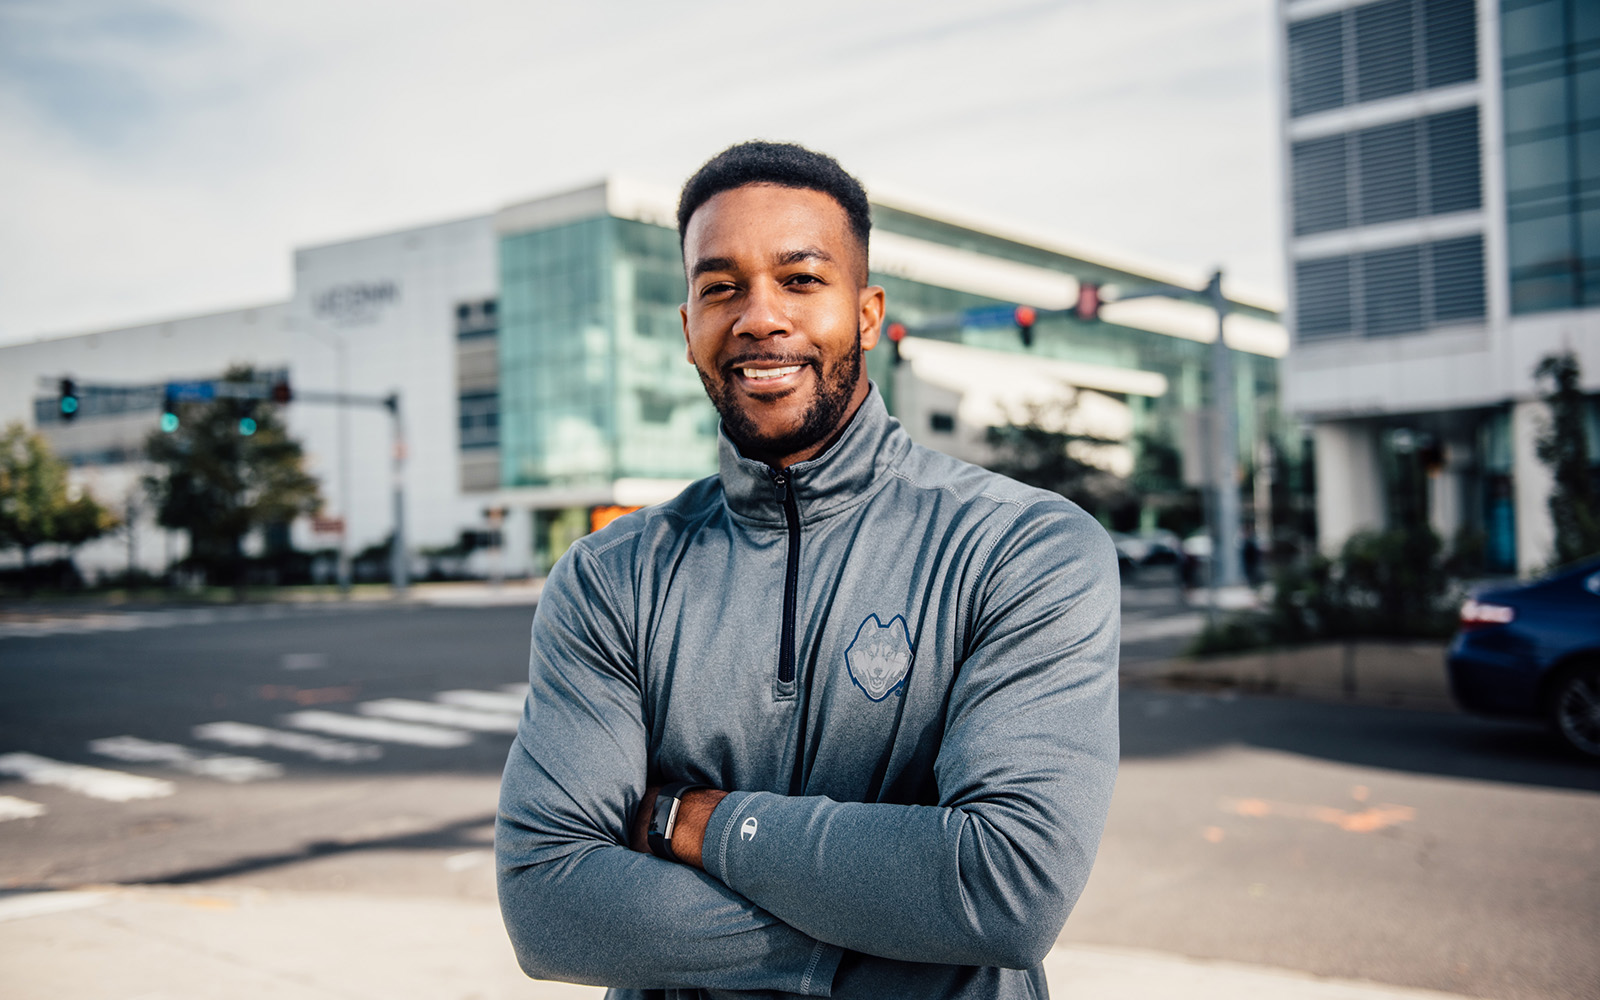 Junau Boucard '11 (above) will run in the NYC Marathon next month. He is juggling work, race training, and the Part-time MBA program at UConn Stamford. (Nathan Oldham/UConn School of business)